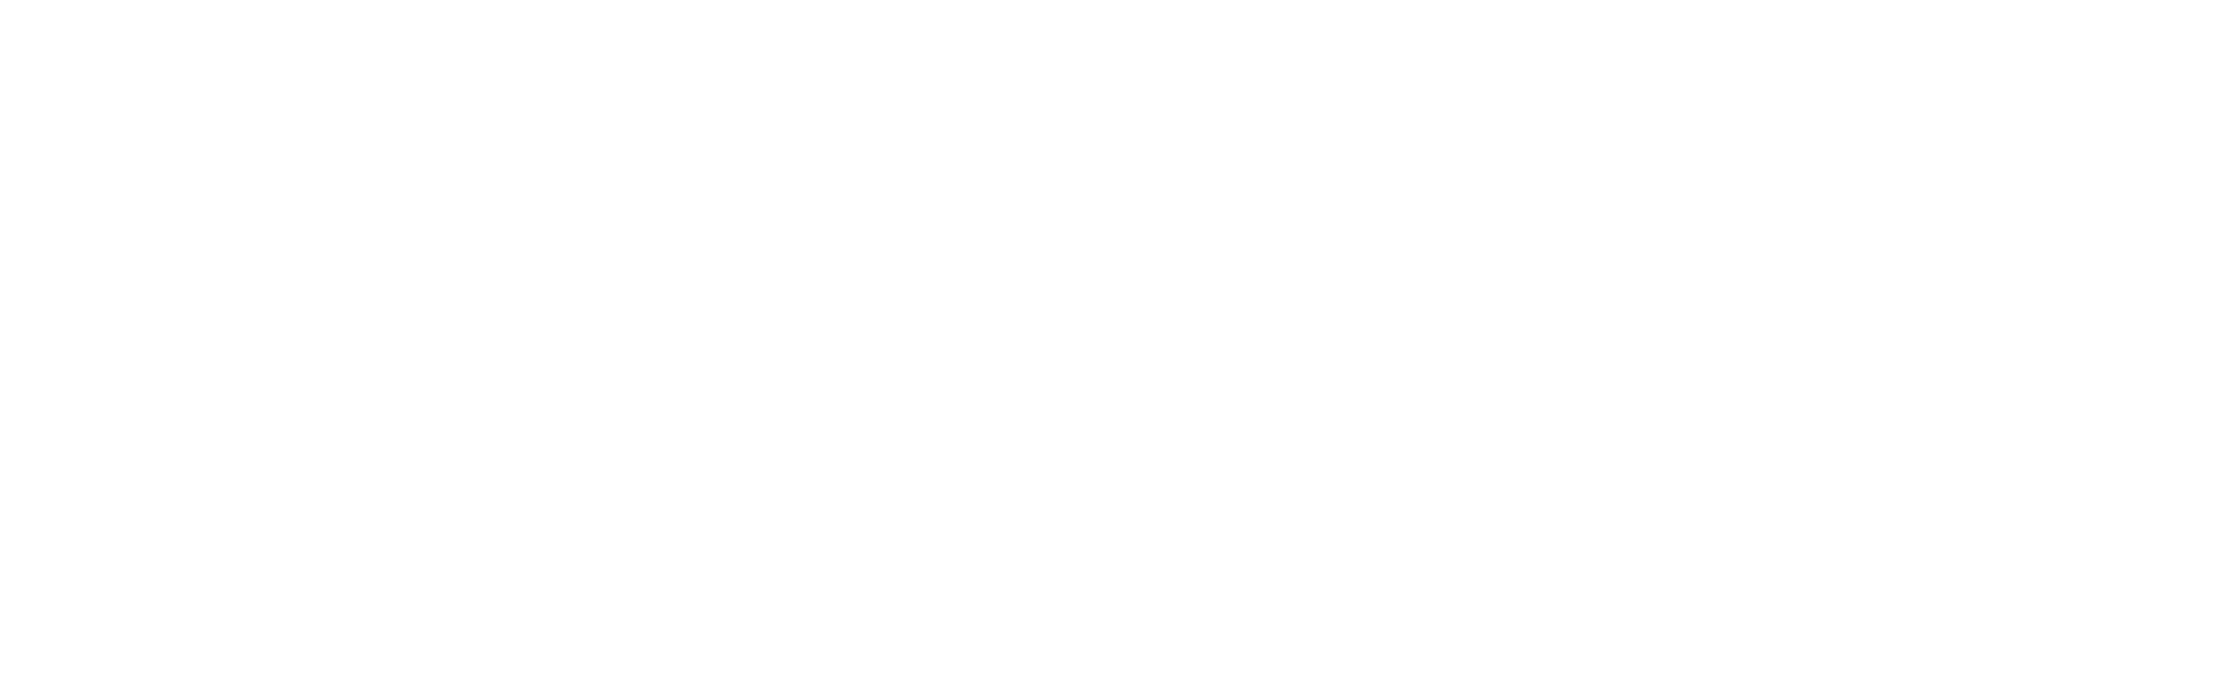 Global Talent For Youth